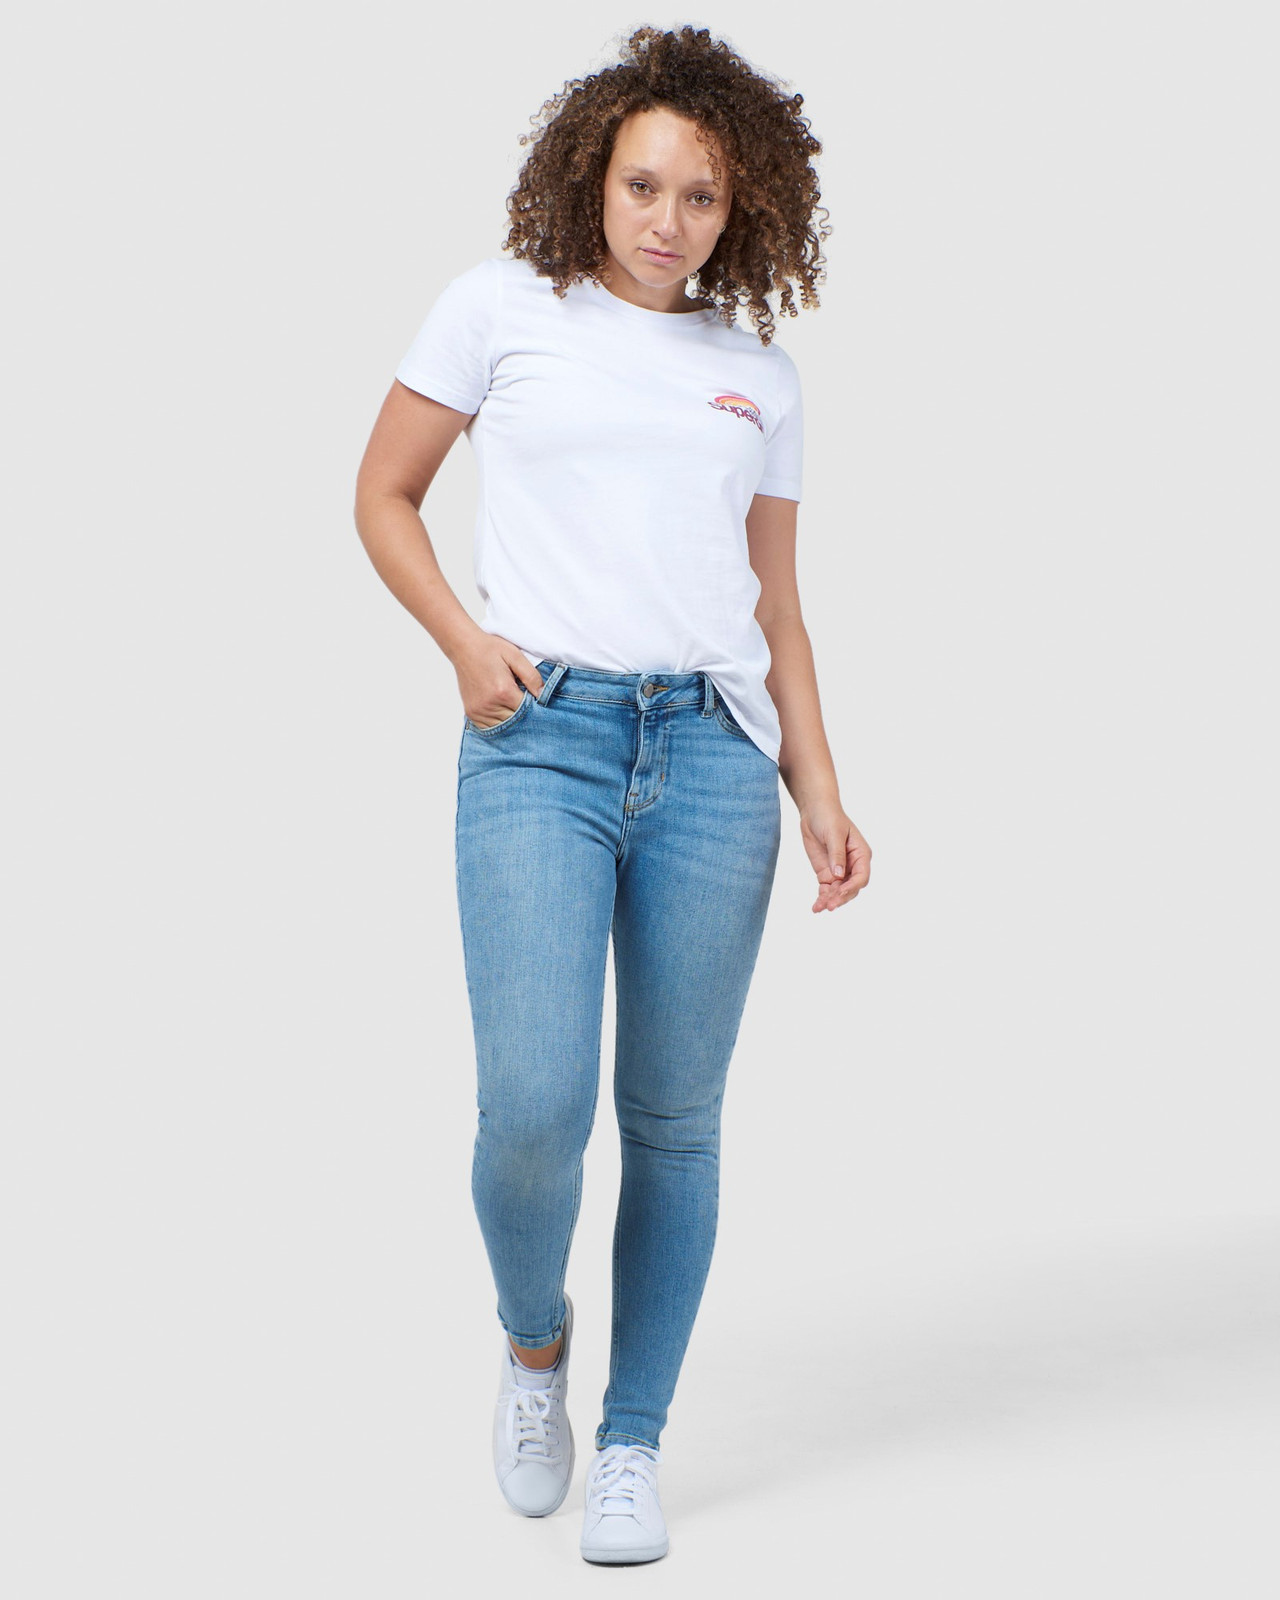 Superdry Womens CL WILDERNESS TEE White Printed T Shirts 1